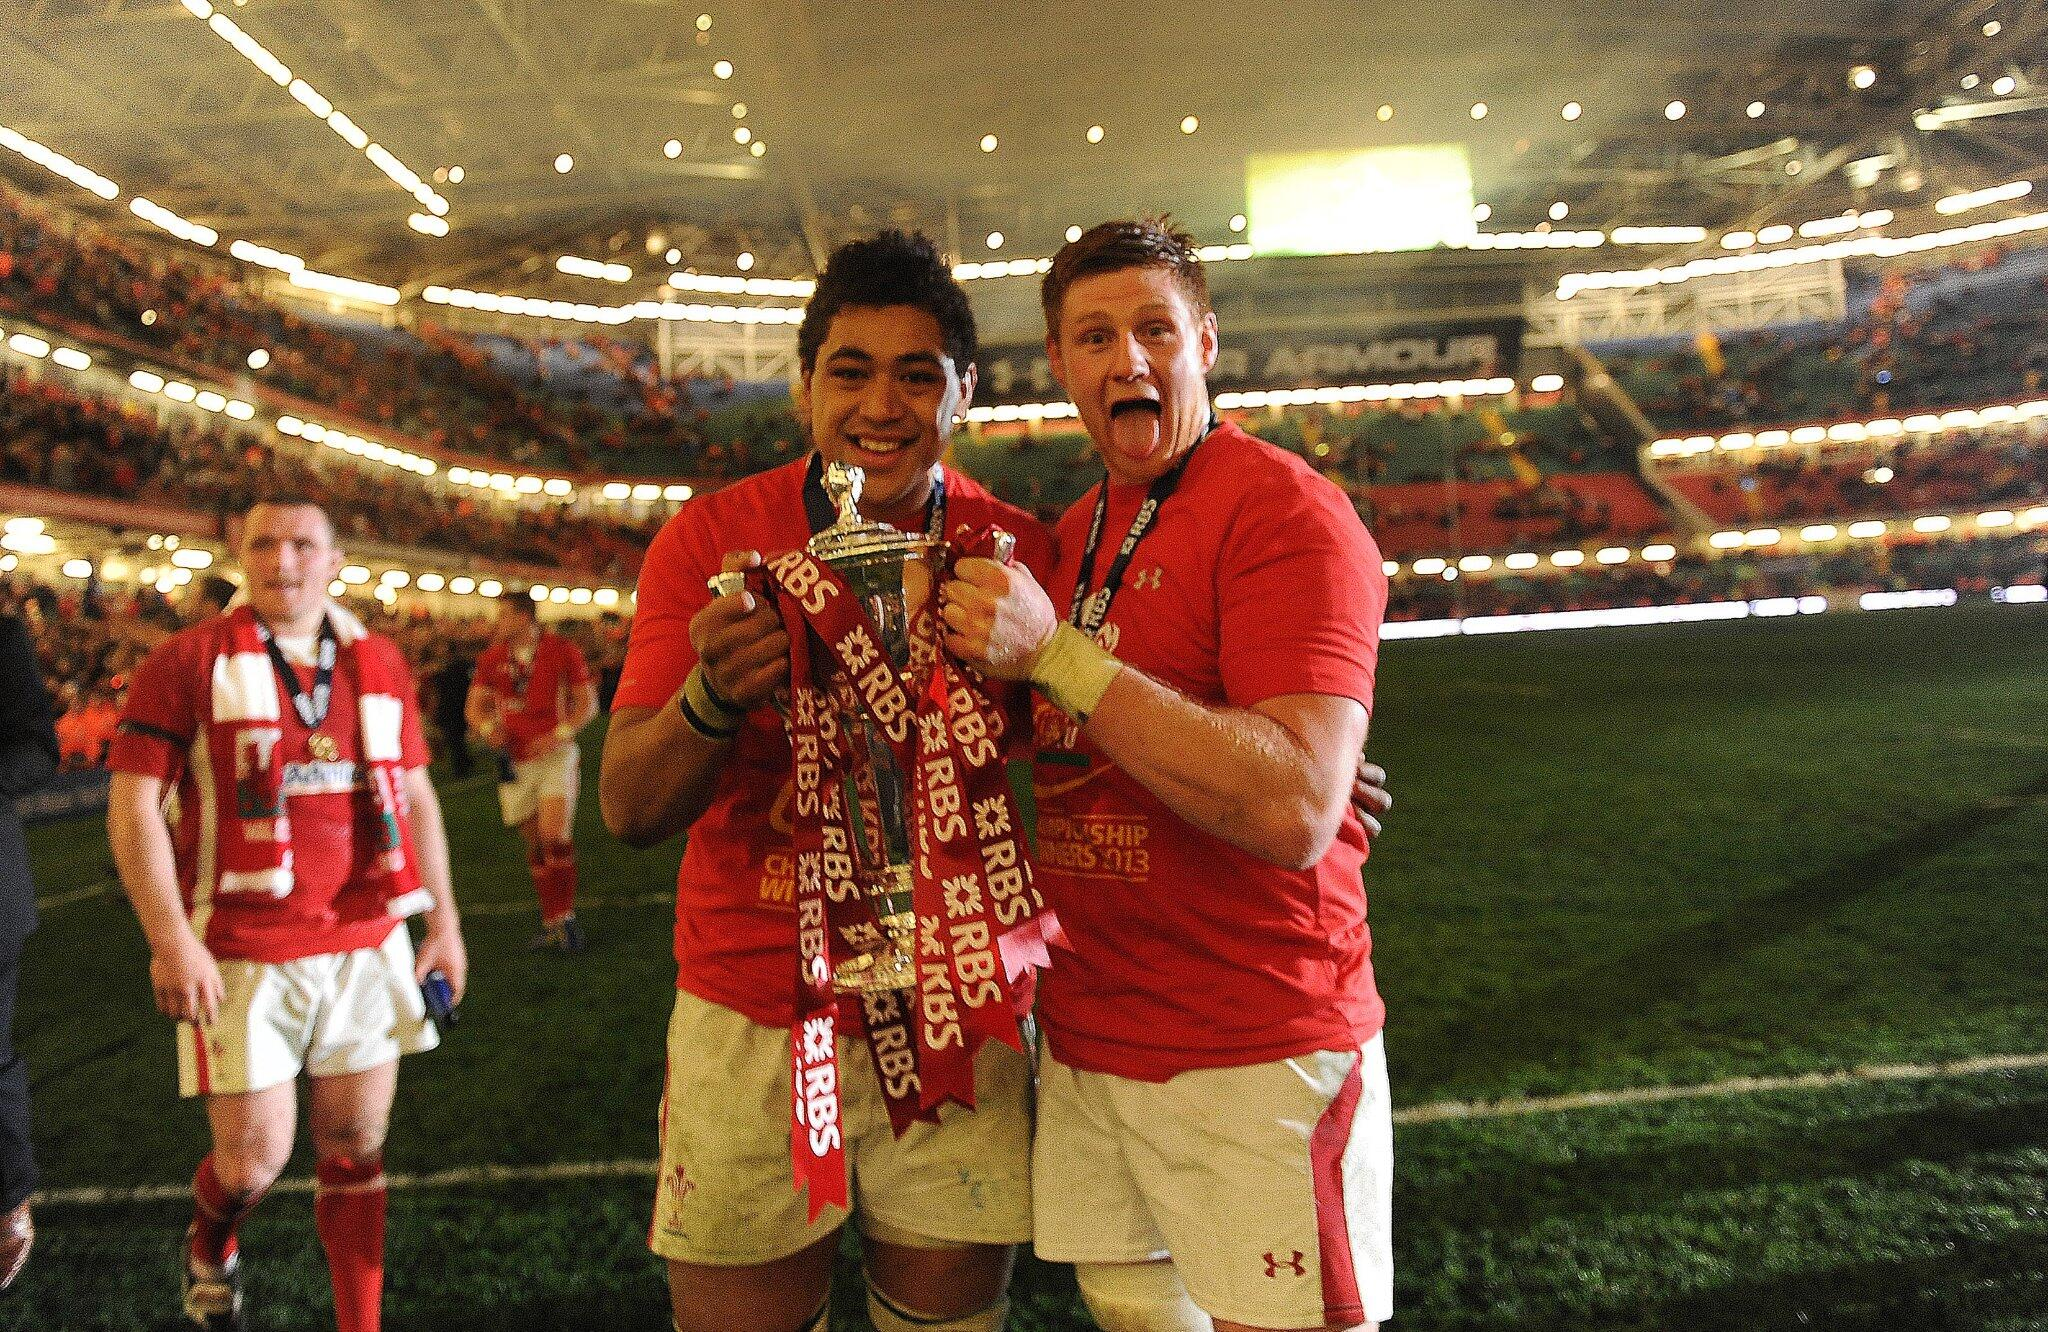 Congratulations to @Coombs_A and @taulupe for being named in the Wales team to face Ireland #DRAGONS http://t.co/LsmHZ599rI